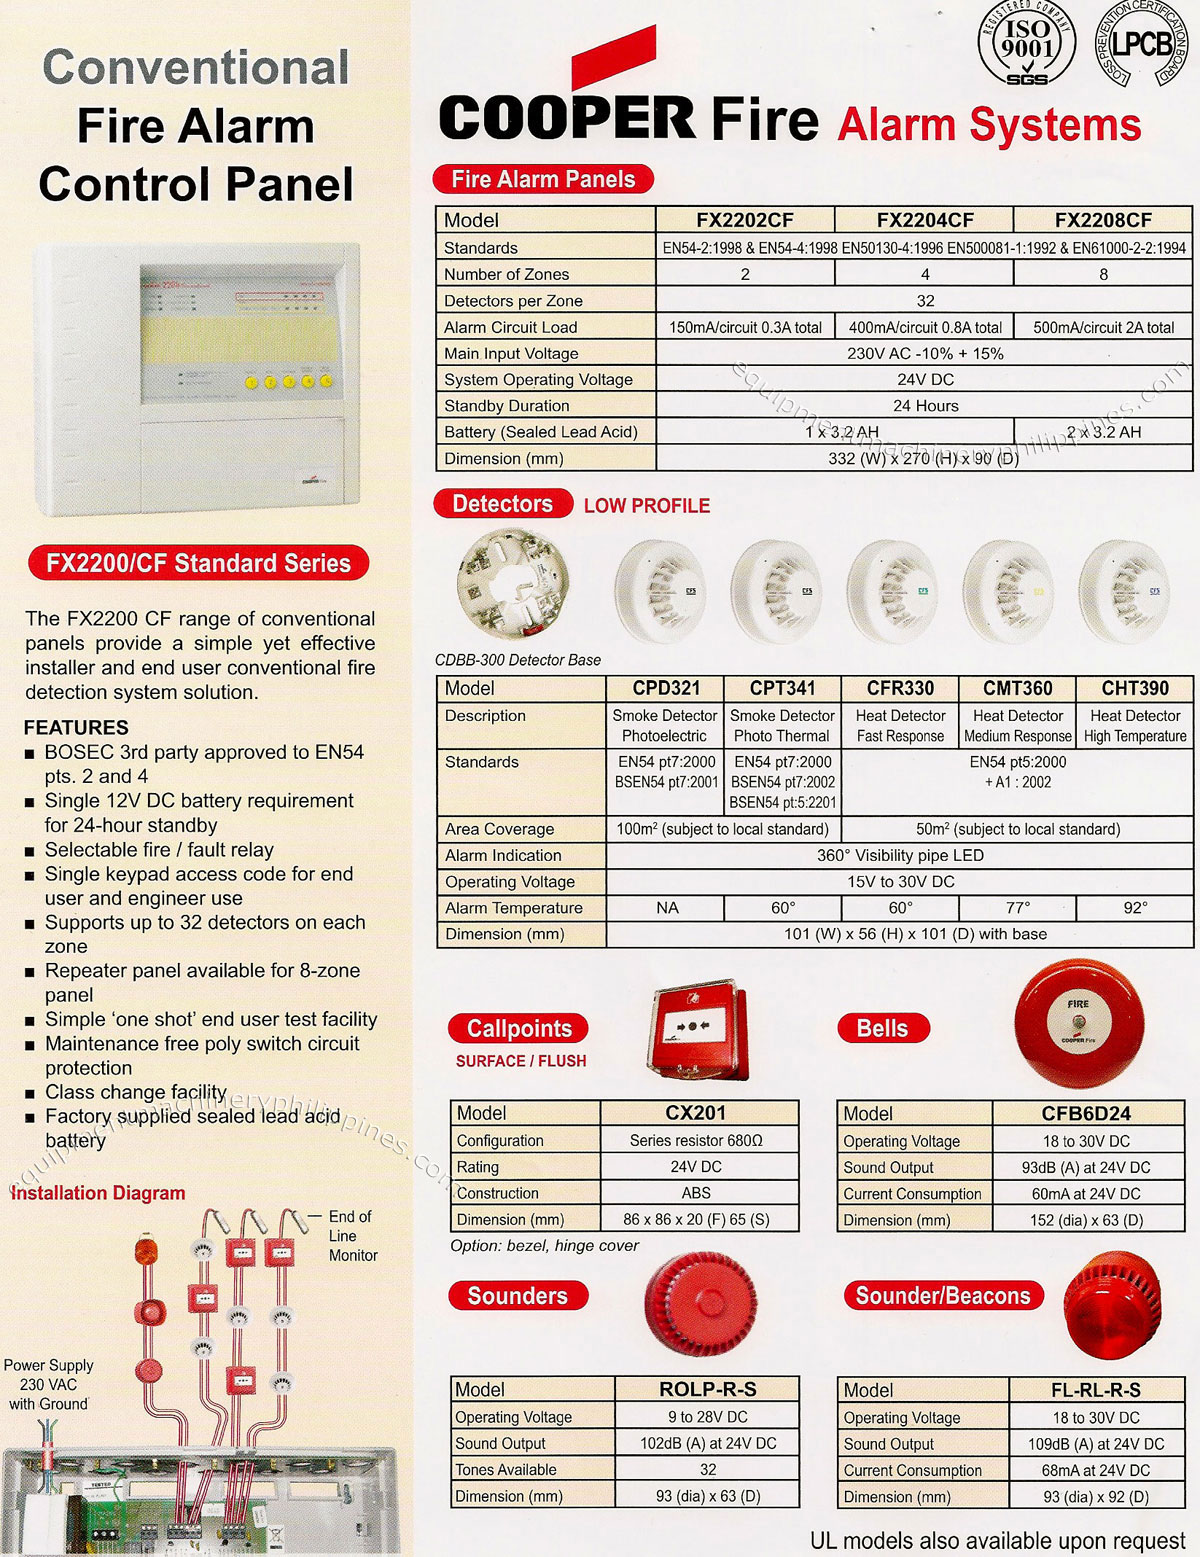 08_Cooper_Fire_Alarm_Systems_Installation_Diagram cooper fire alarm systems, installation diagram philippines menvier smoke detector wiring diagram at bakdesigns.co